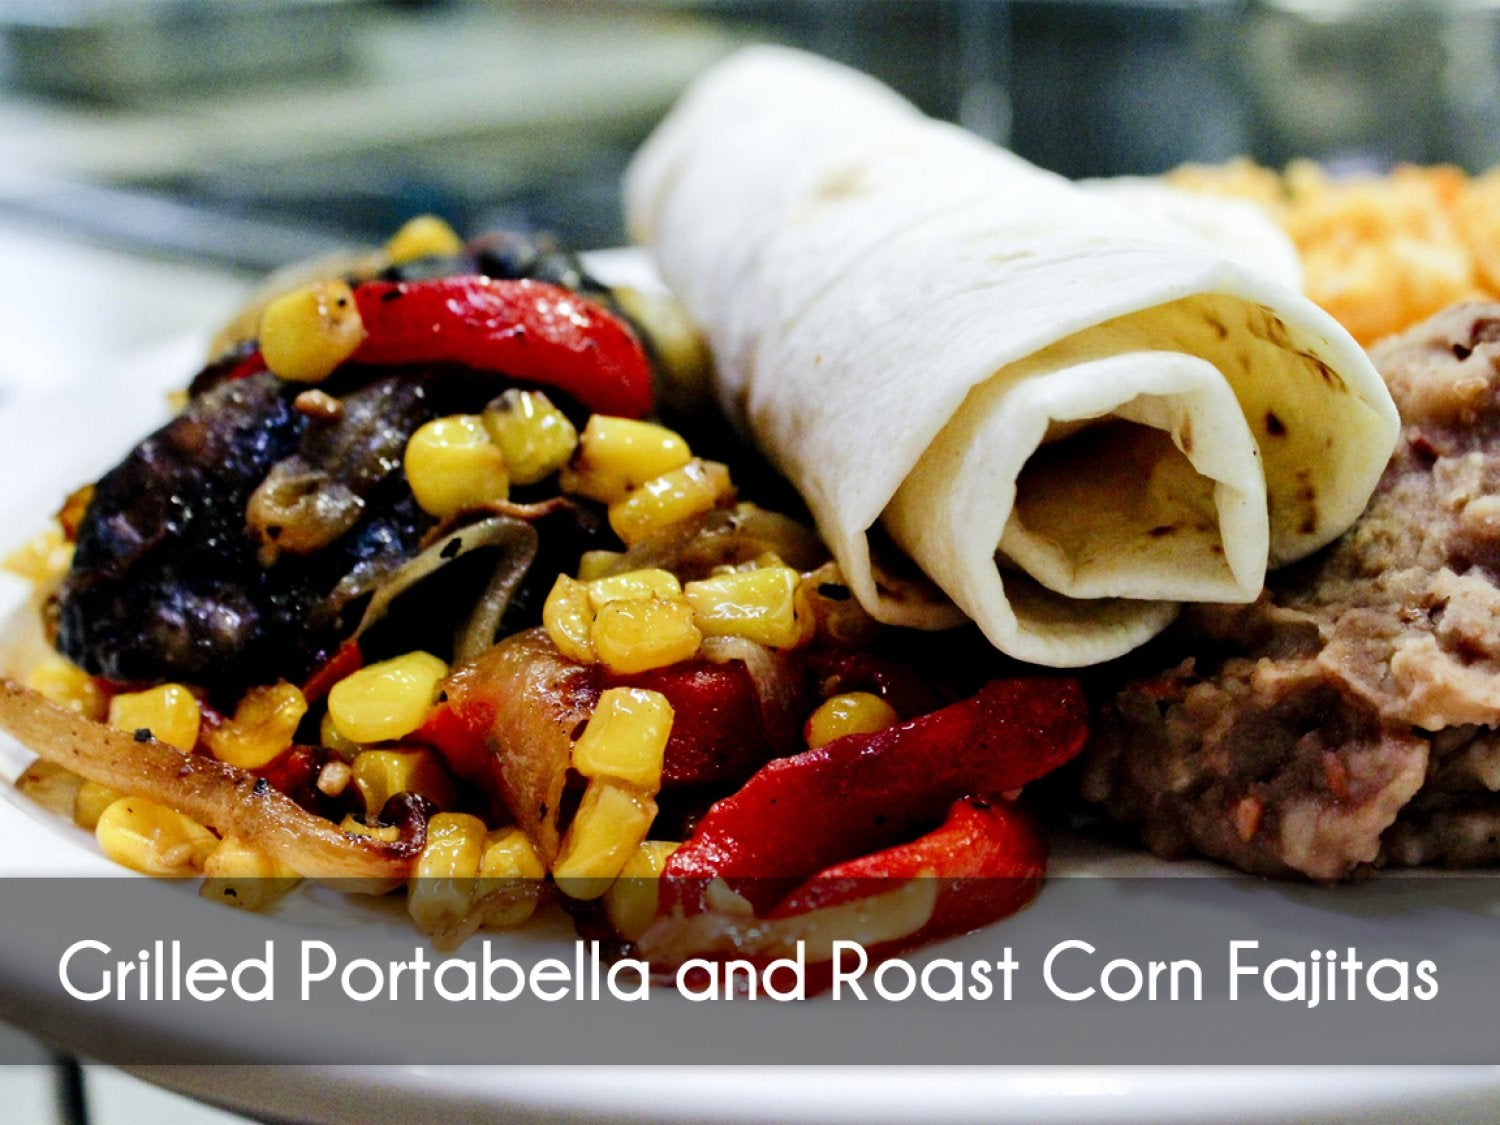 Grilled Portabella Mushroom with roasted corn salsa